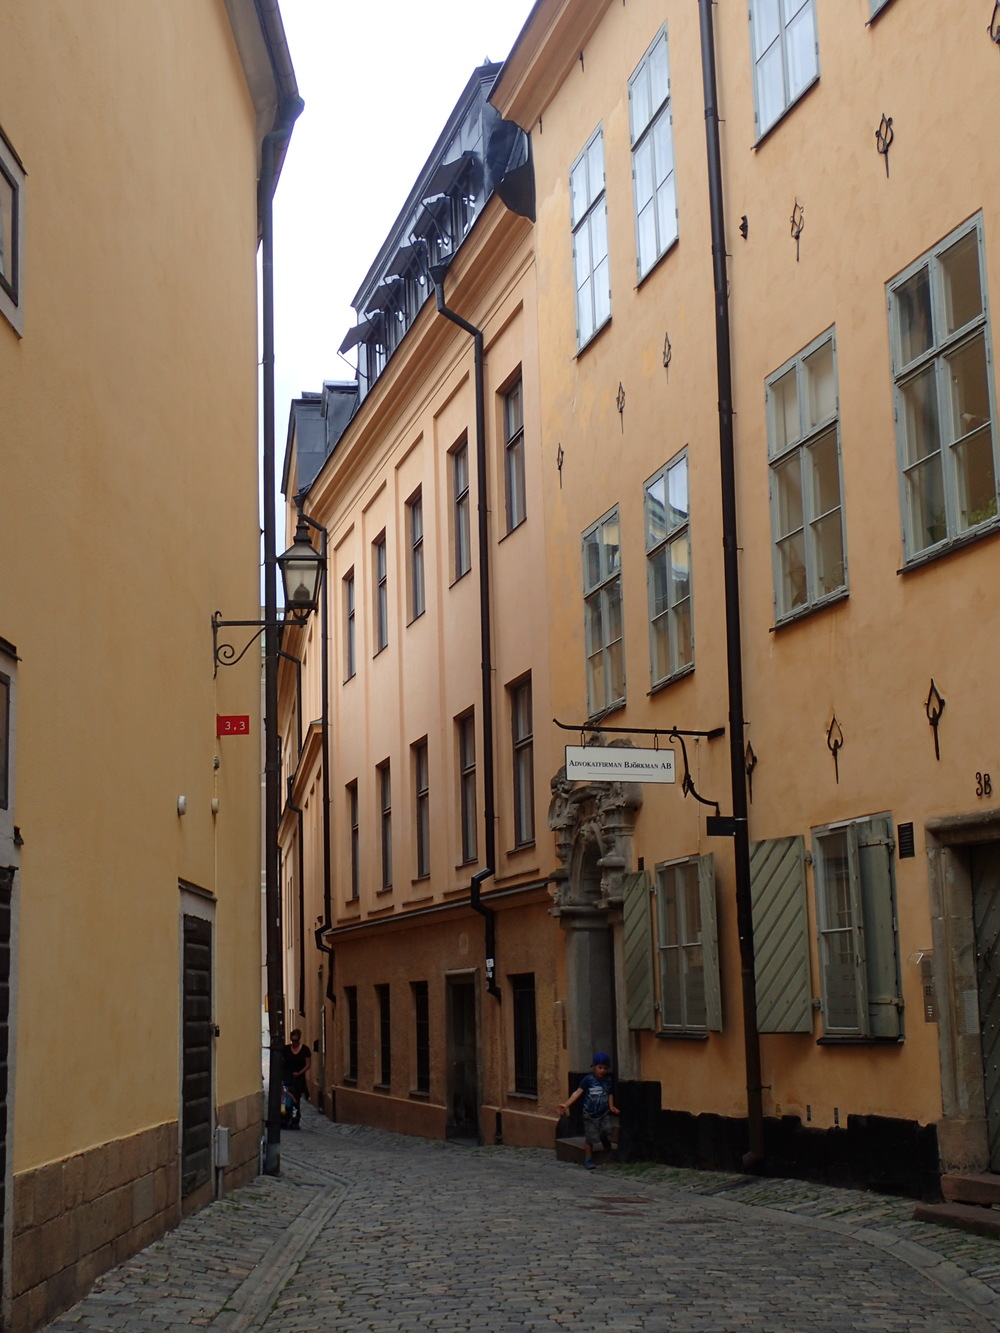 Small street in the old city of Stockholm.